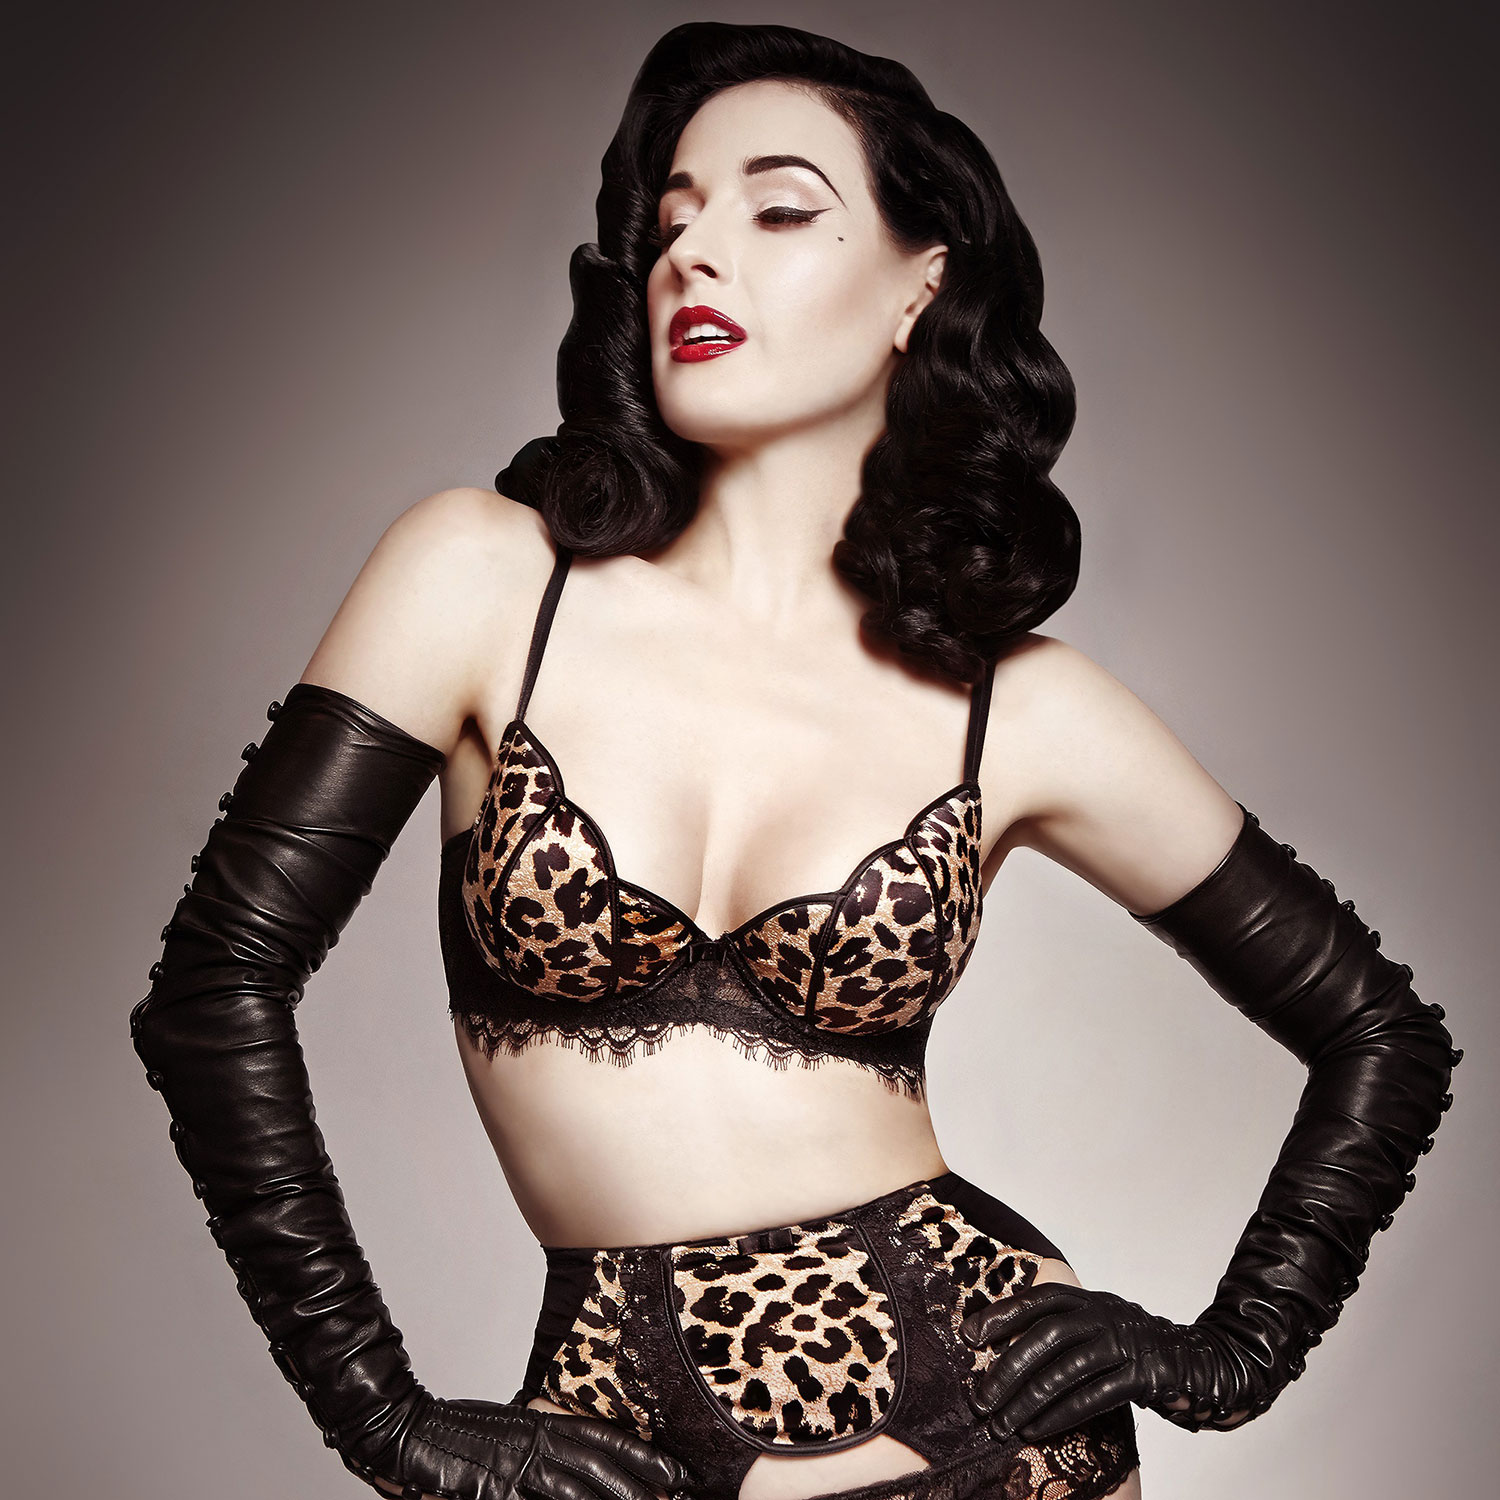 How to Feel Sexy – Dita Von Teese Tips on Feeling Sexy Dita Von Teese